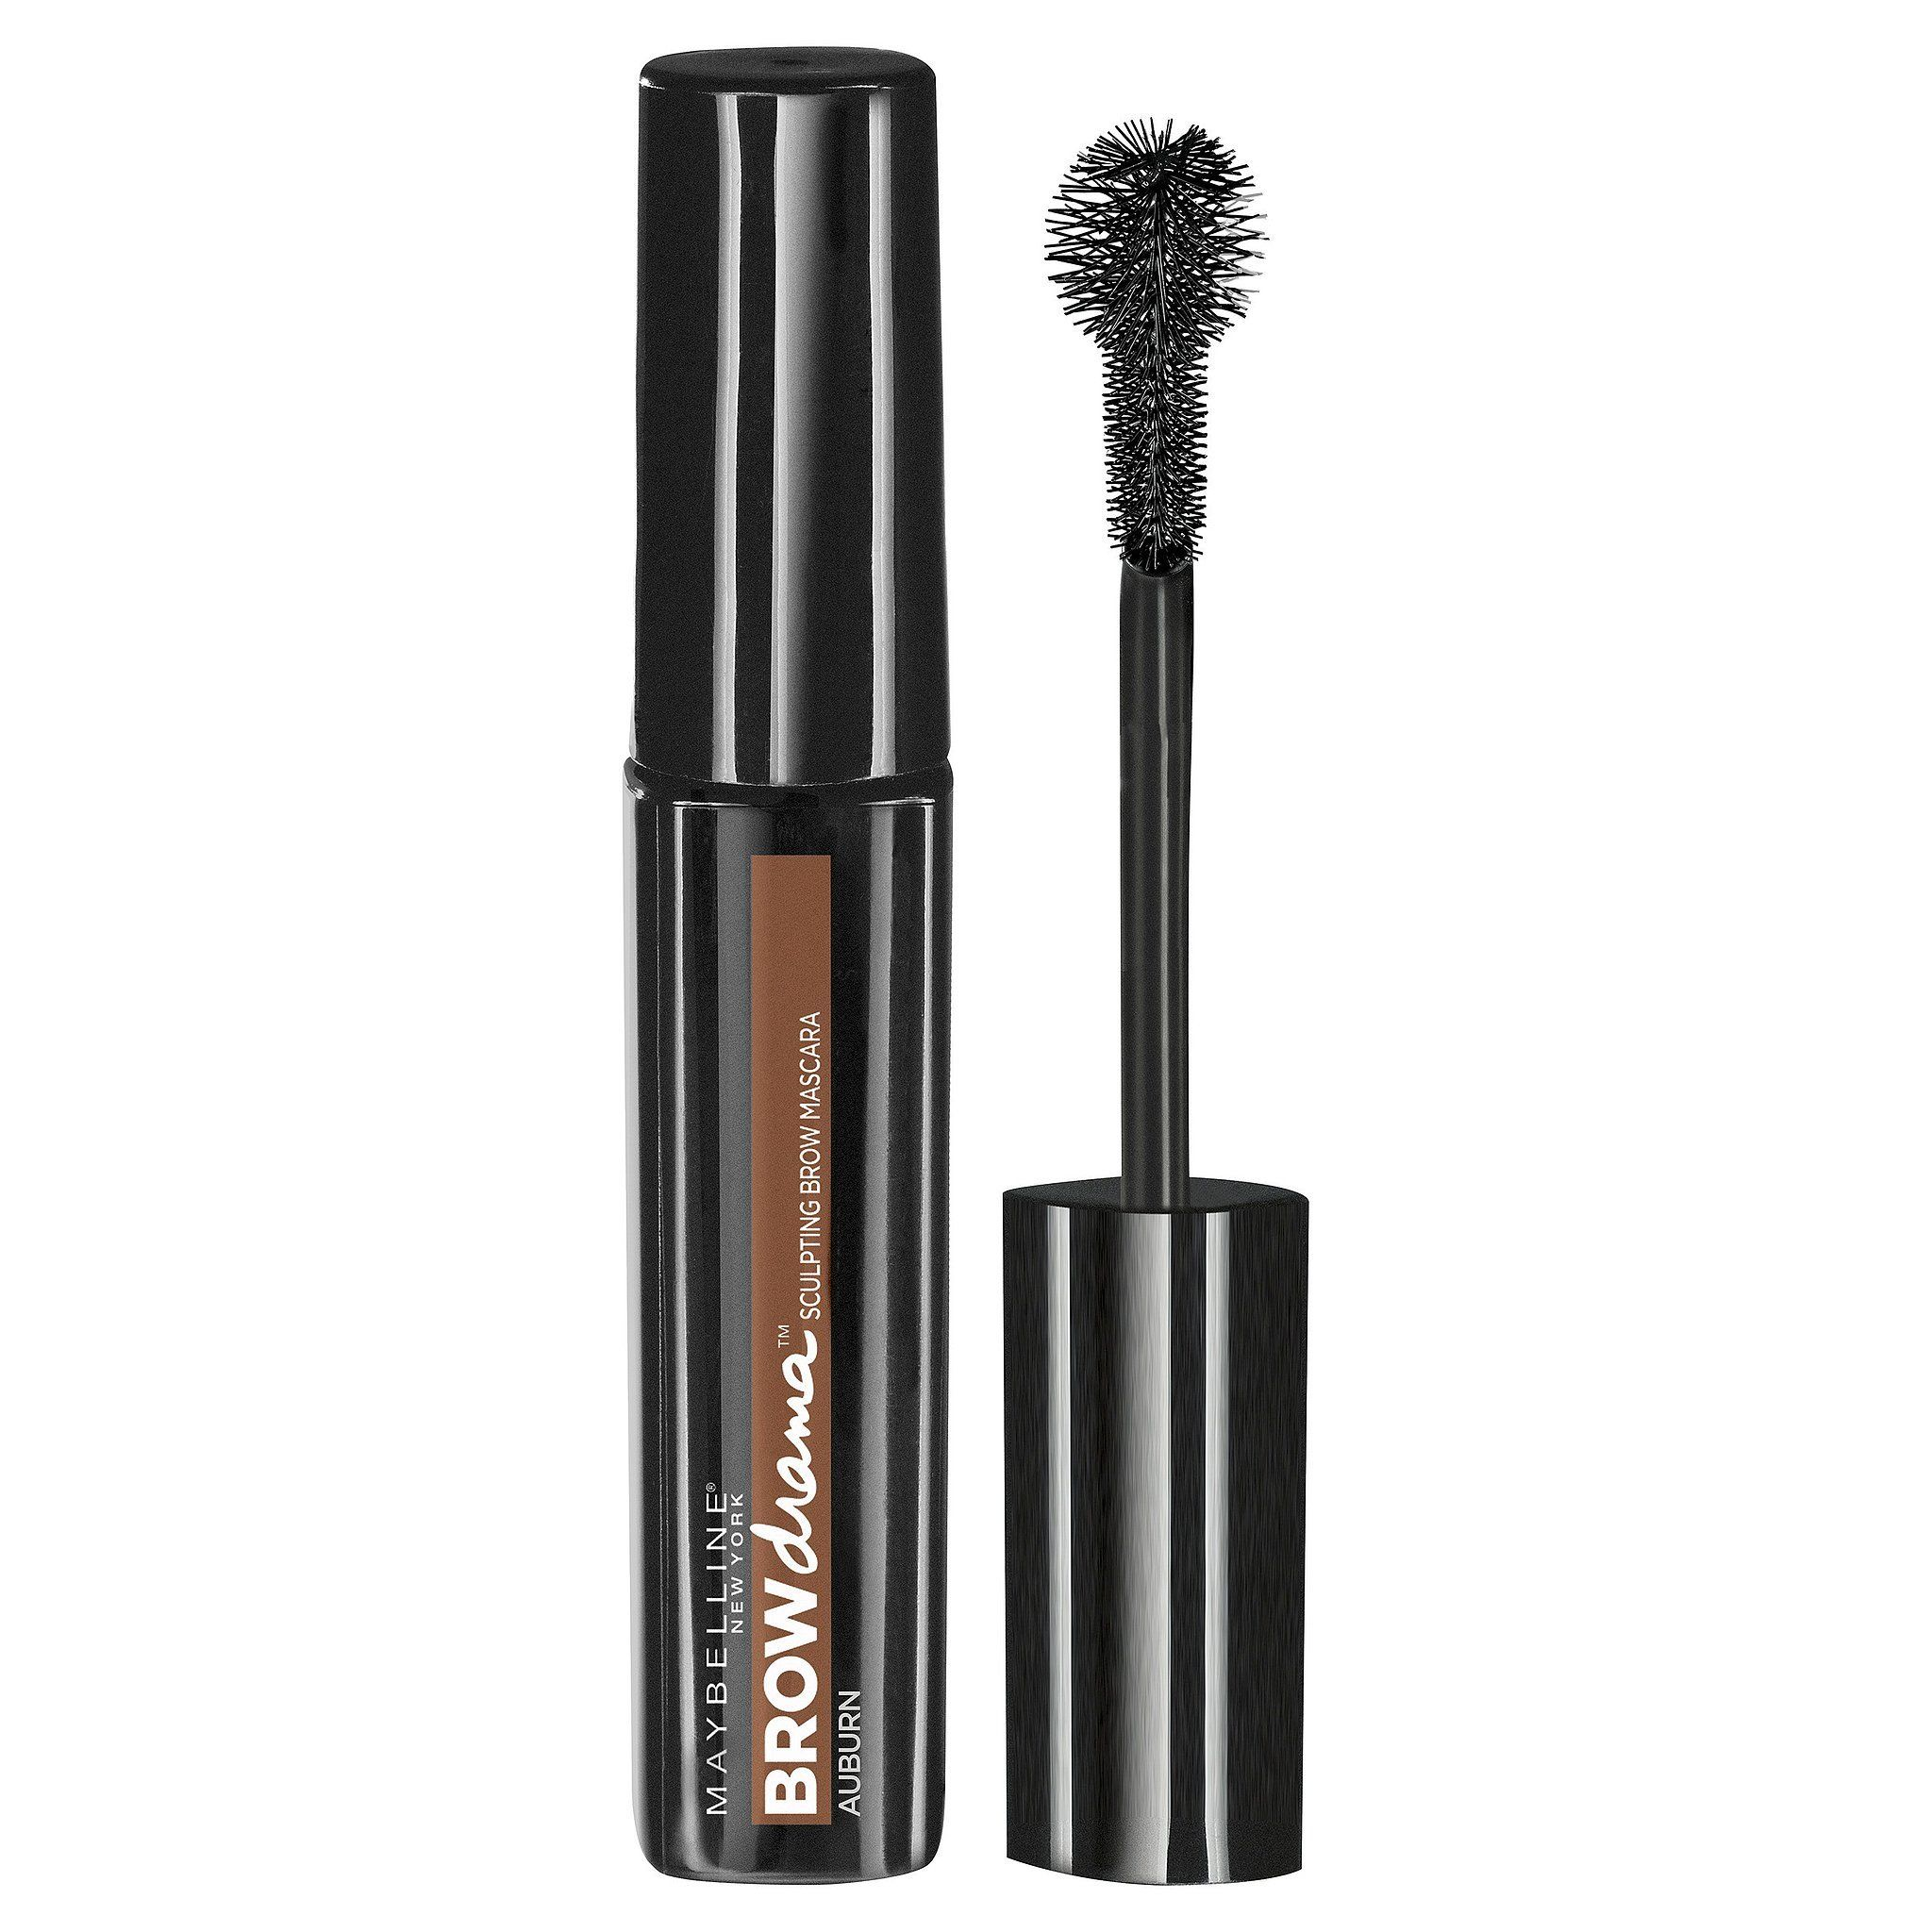 Brow tints best eyebrow products brow mascara brows